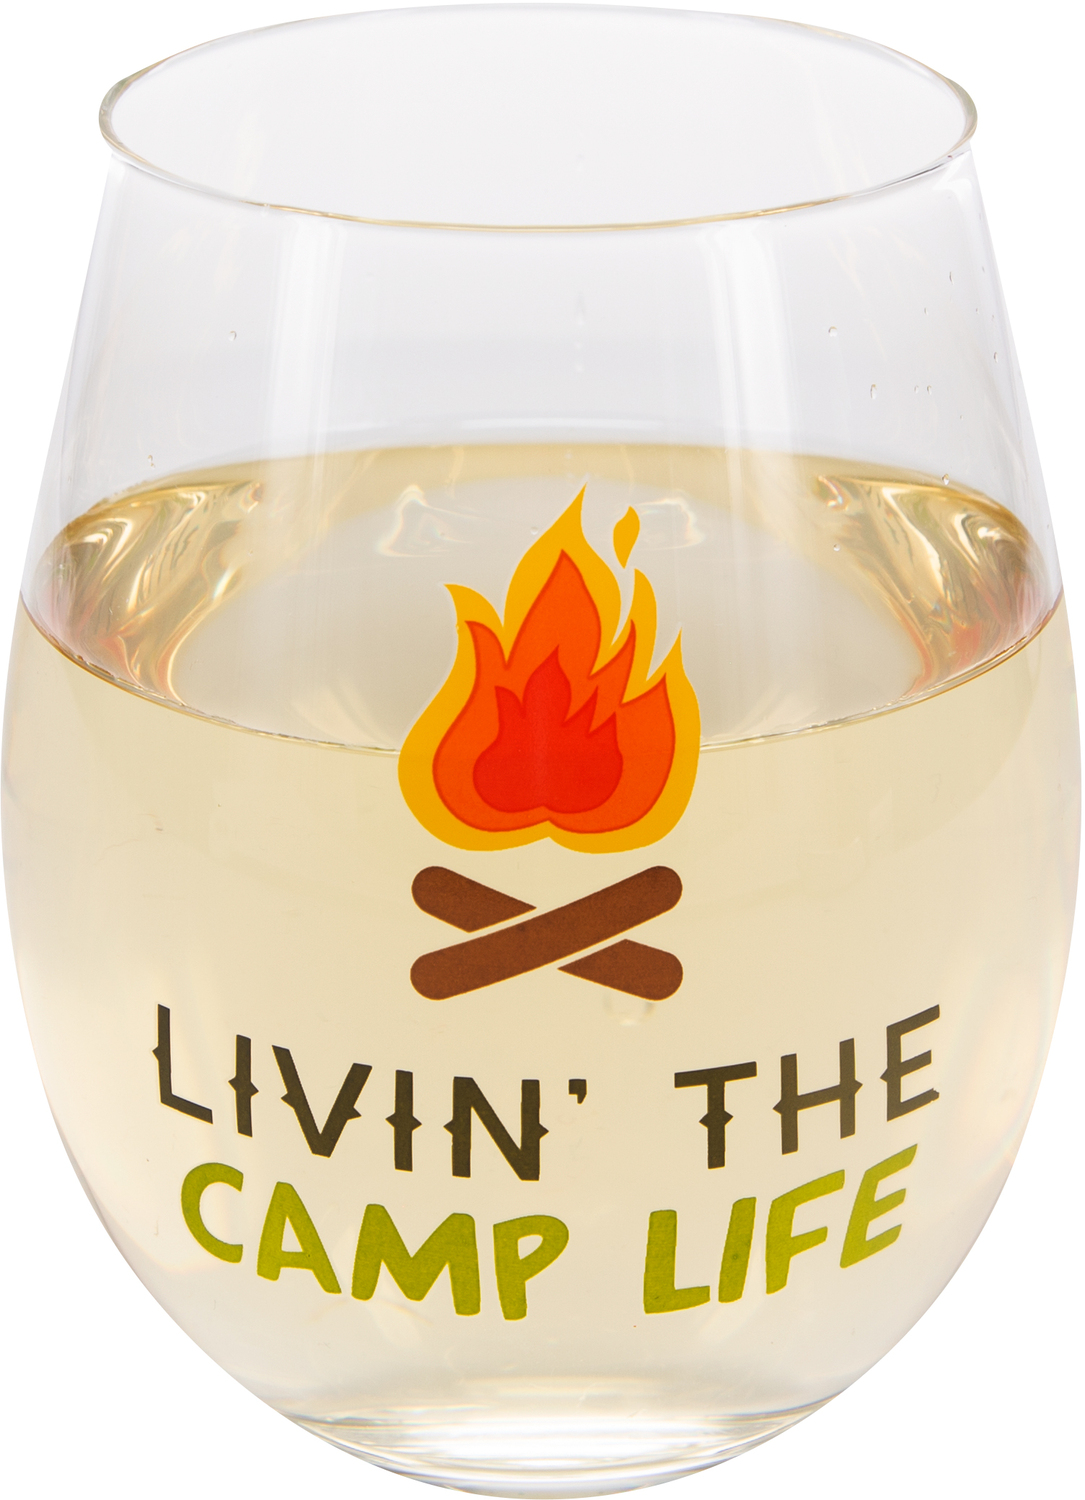 Livin' the Camp Life by We People - Livin' the Camp Life - 18 oz Stemless Wine Glass